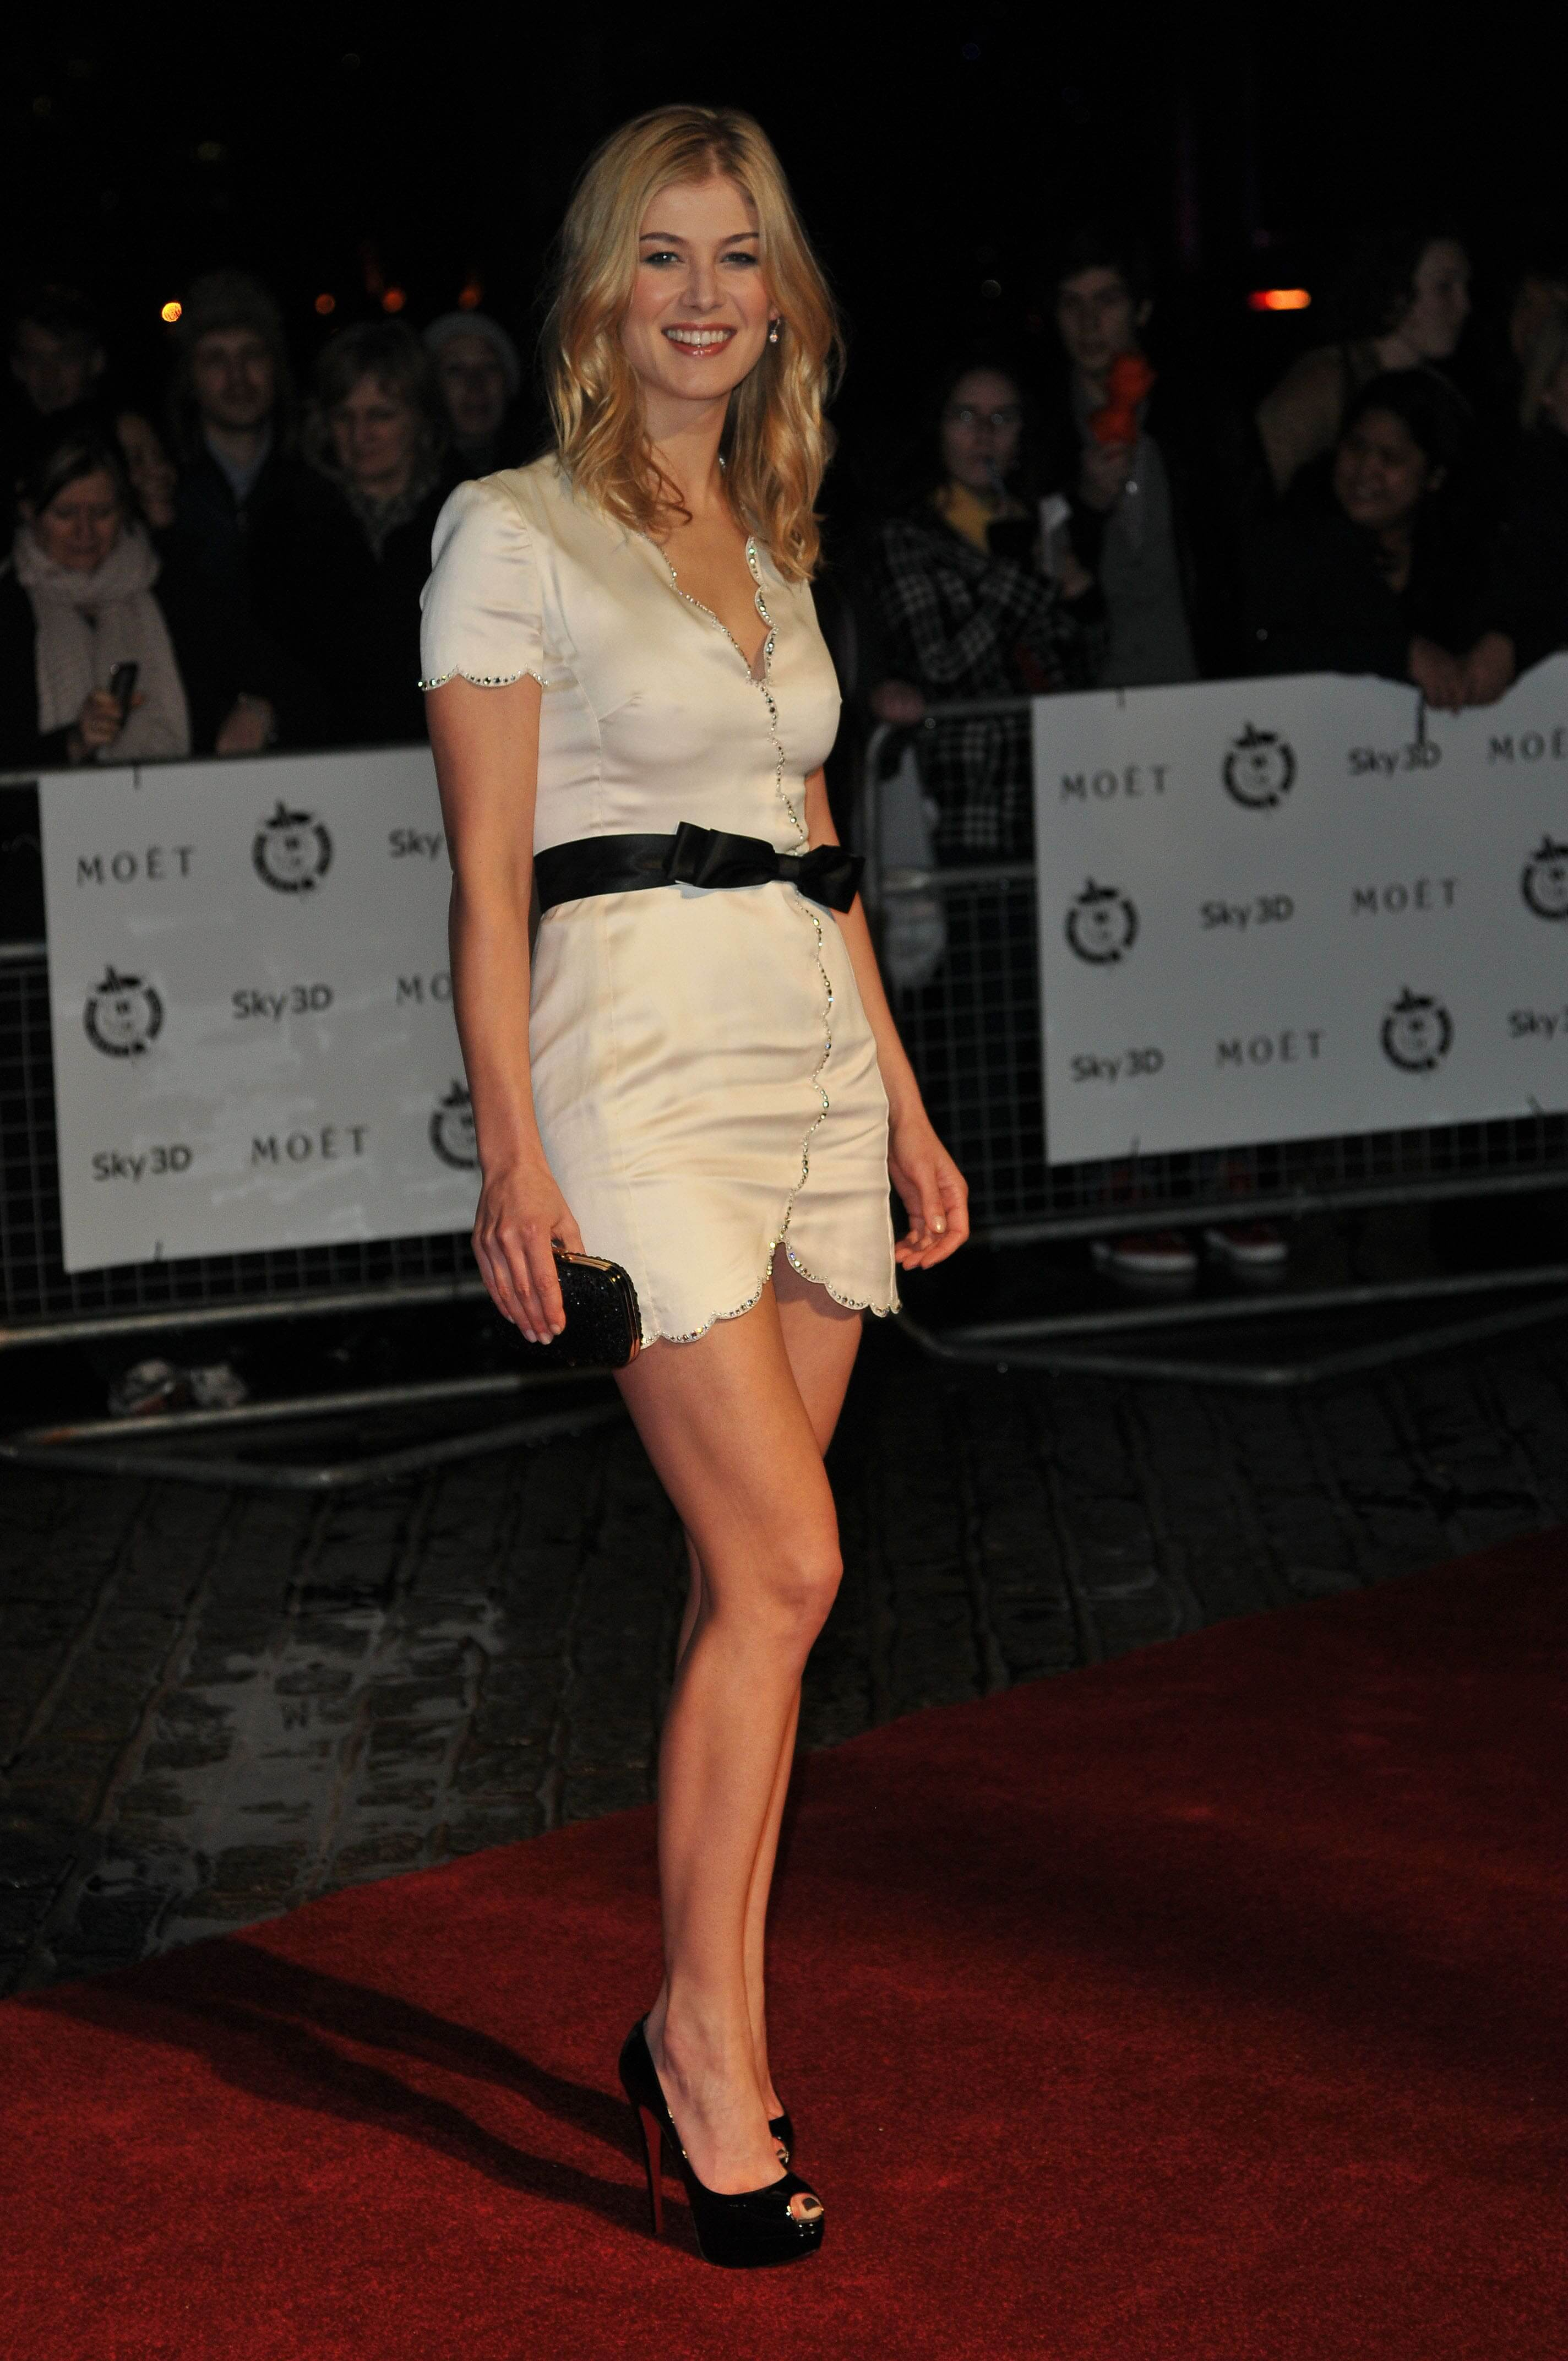 Rosamund-Pike-sexy-legs-pic